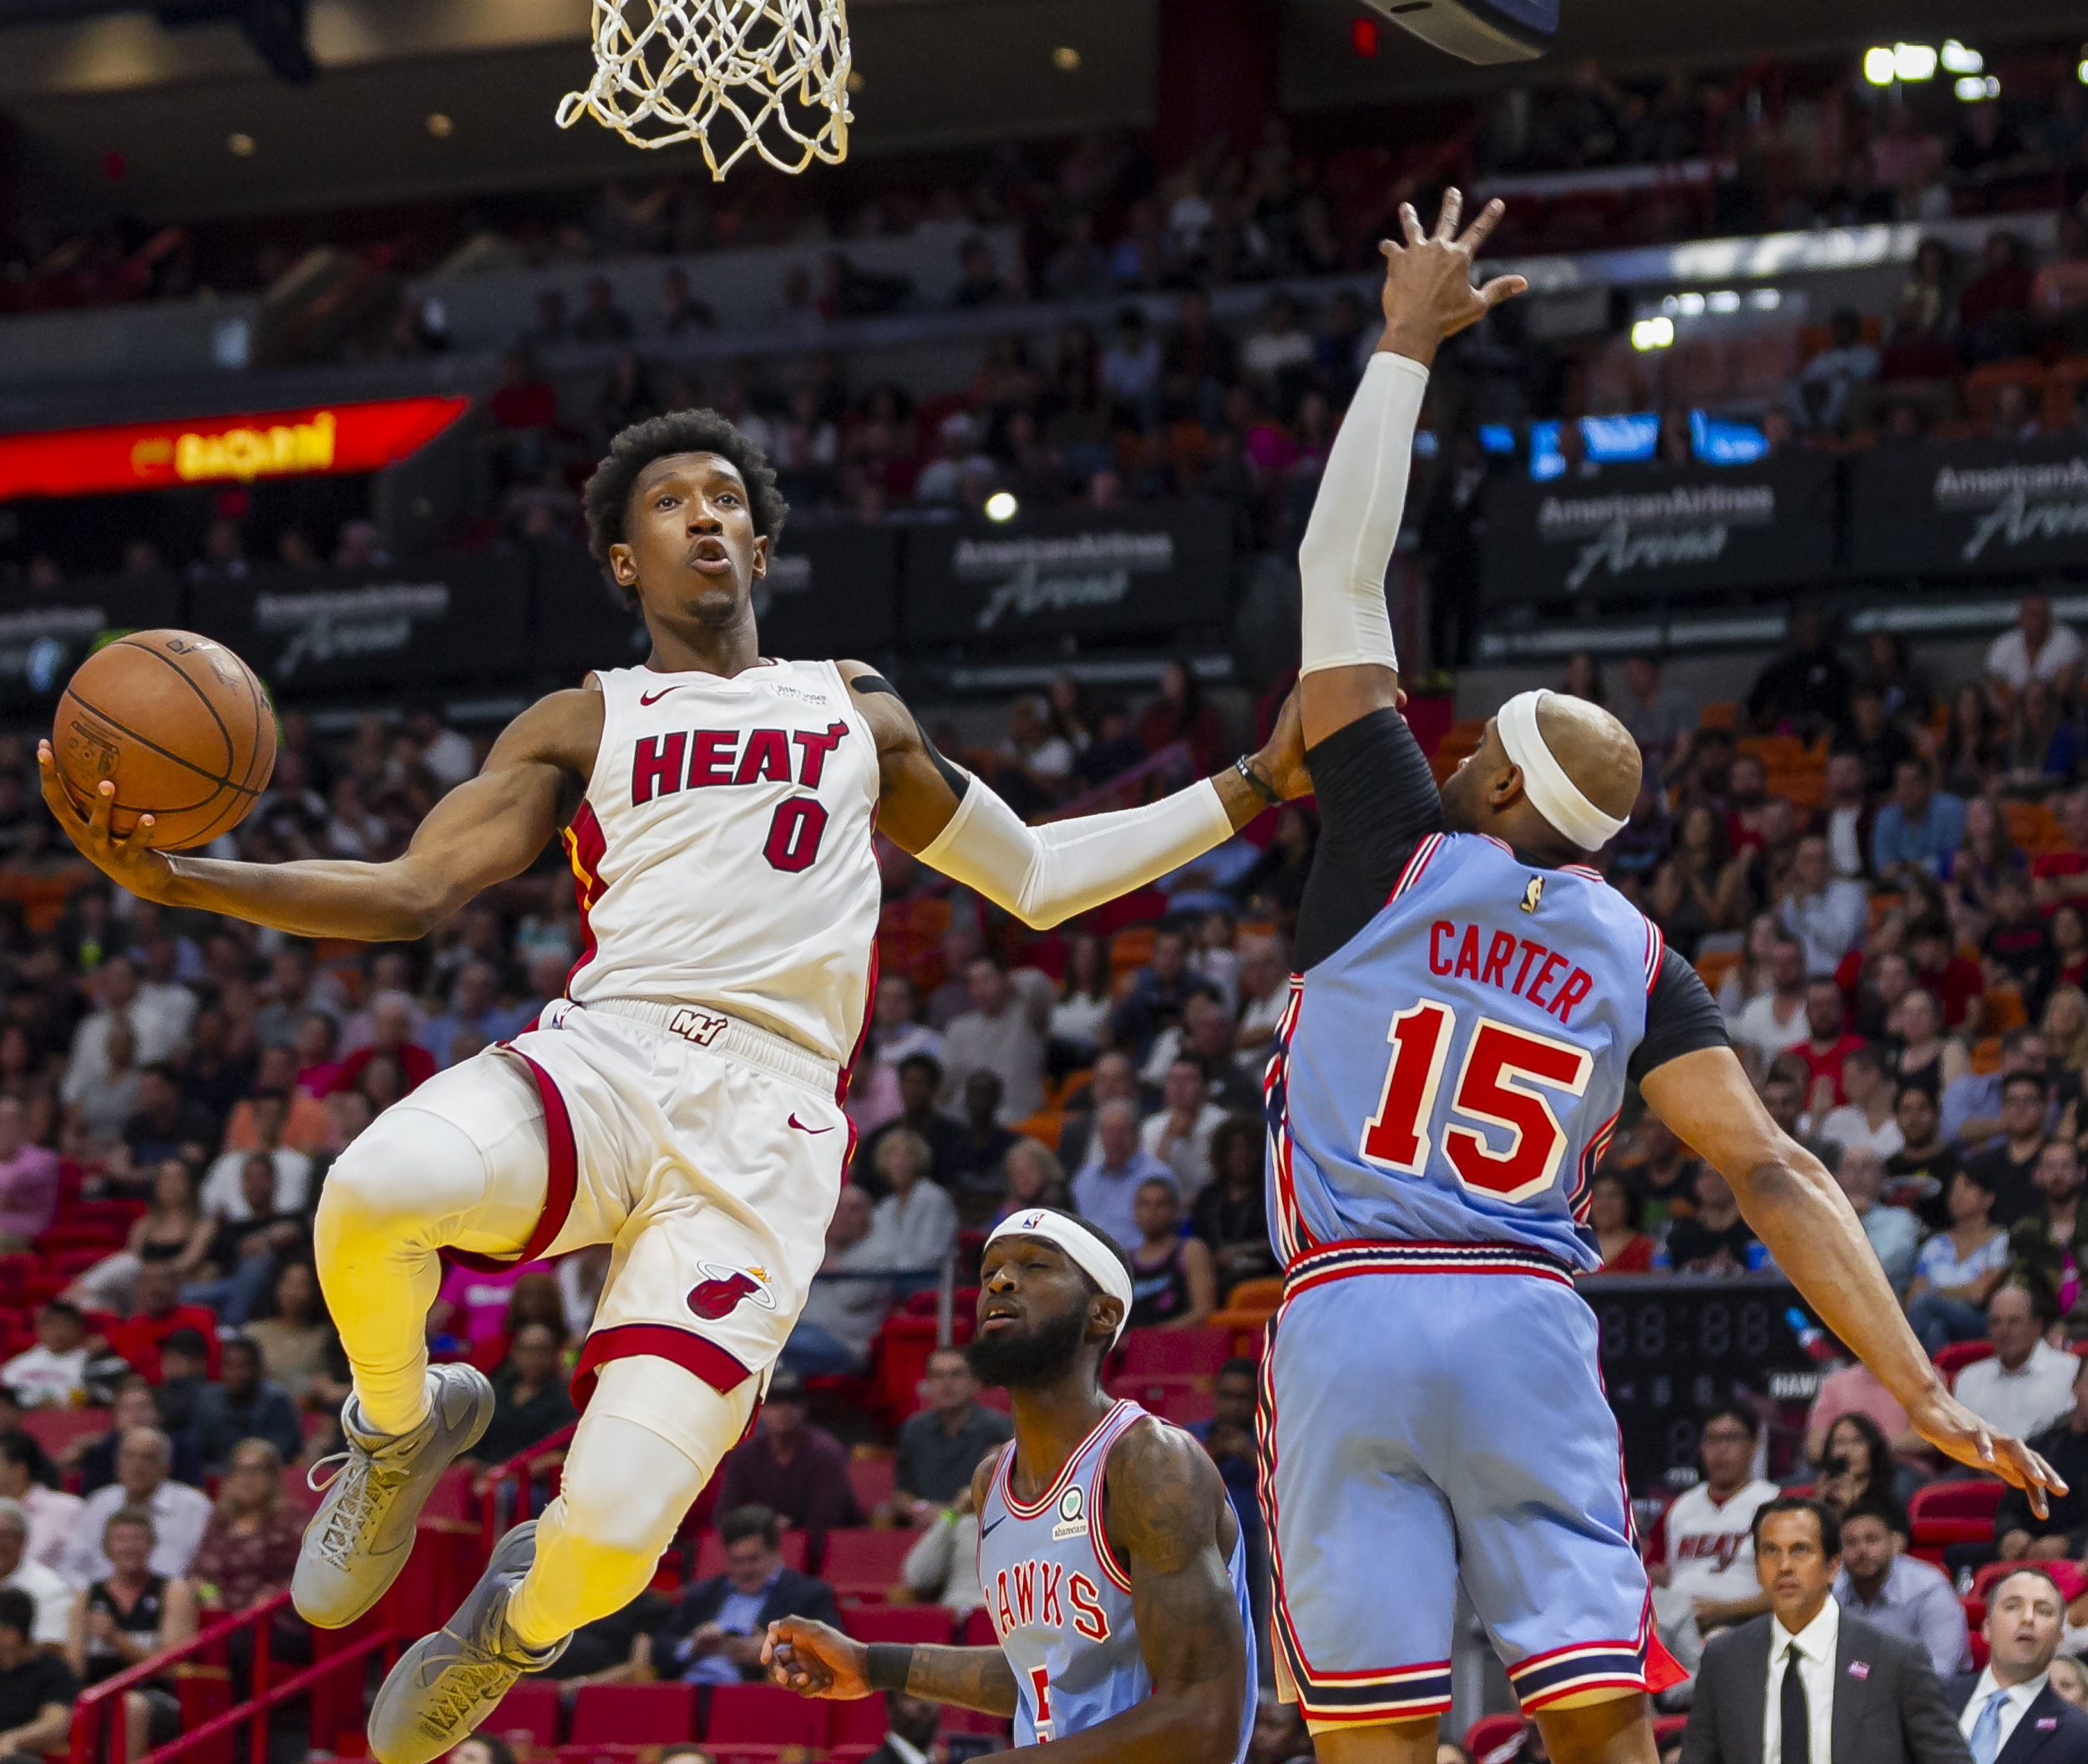 Miami Heat guard Josh Richardson (0) goes for an assist while Atlanta Hawks guard Vince Carter (15) tries to defend during the first quarter as the Miami Heat host the Atlanta Hawks at the AmericanAirlines Arena in downtown Miami on Monday, March 4, 2019.